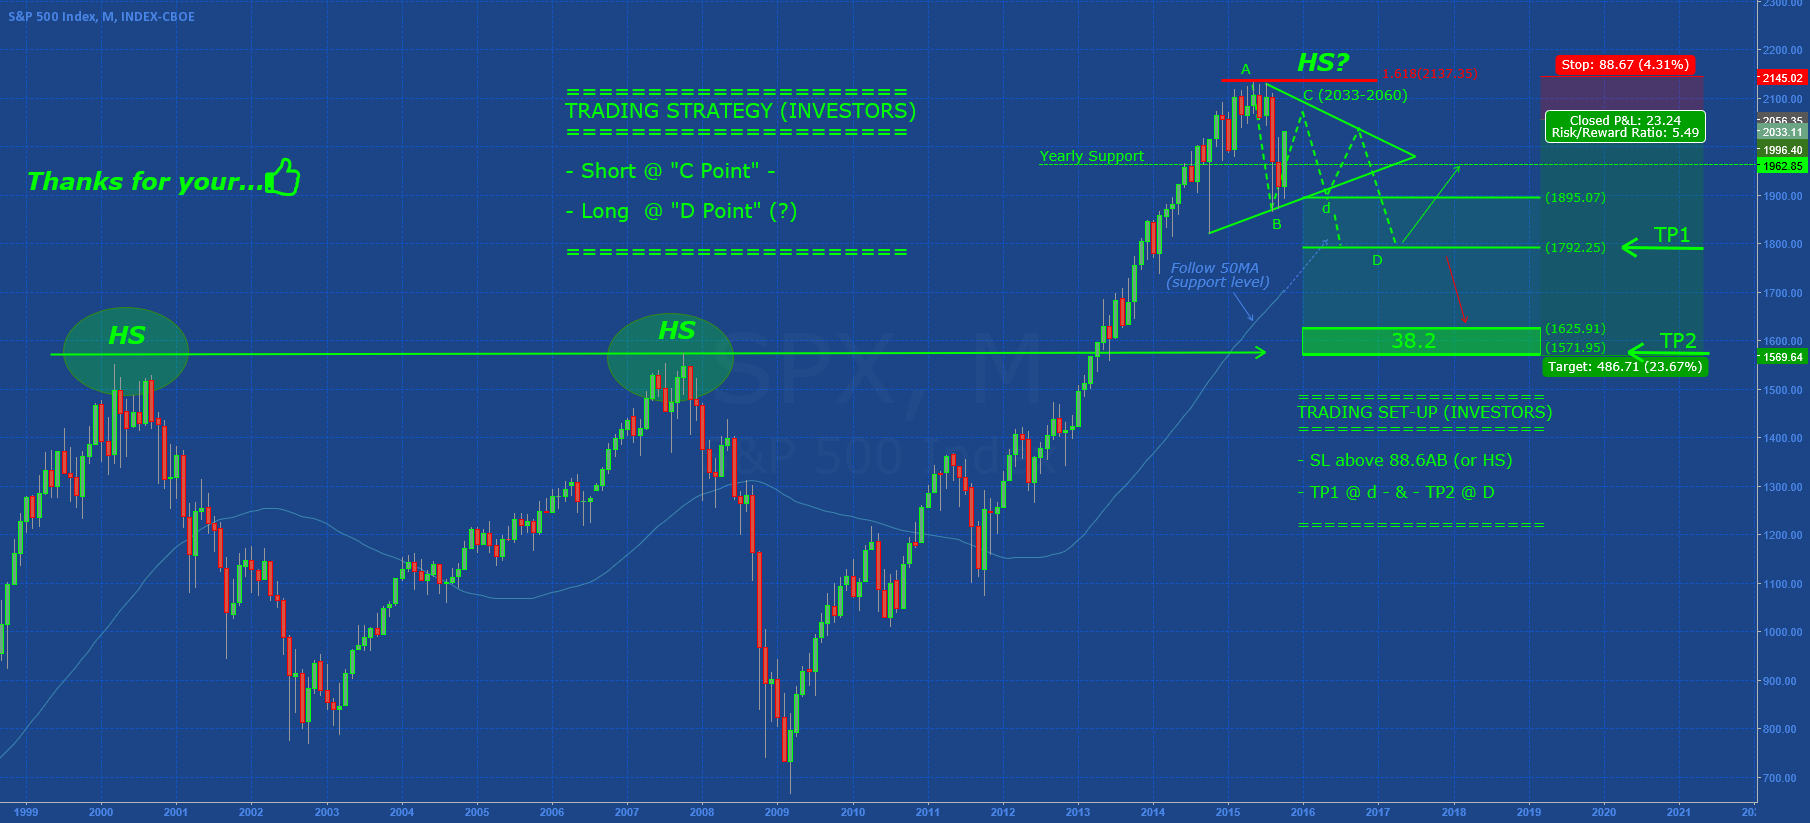 SP500: Medium-Term Consolidation